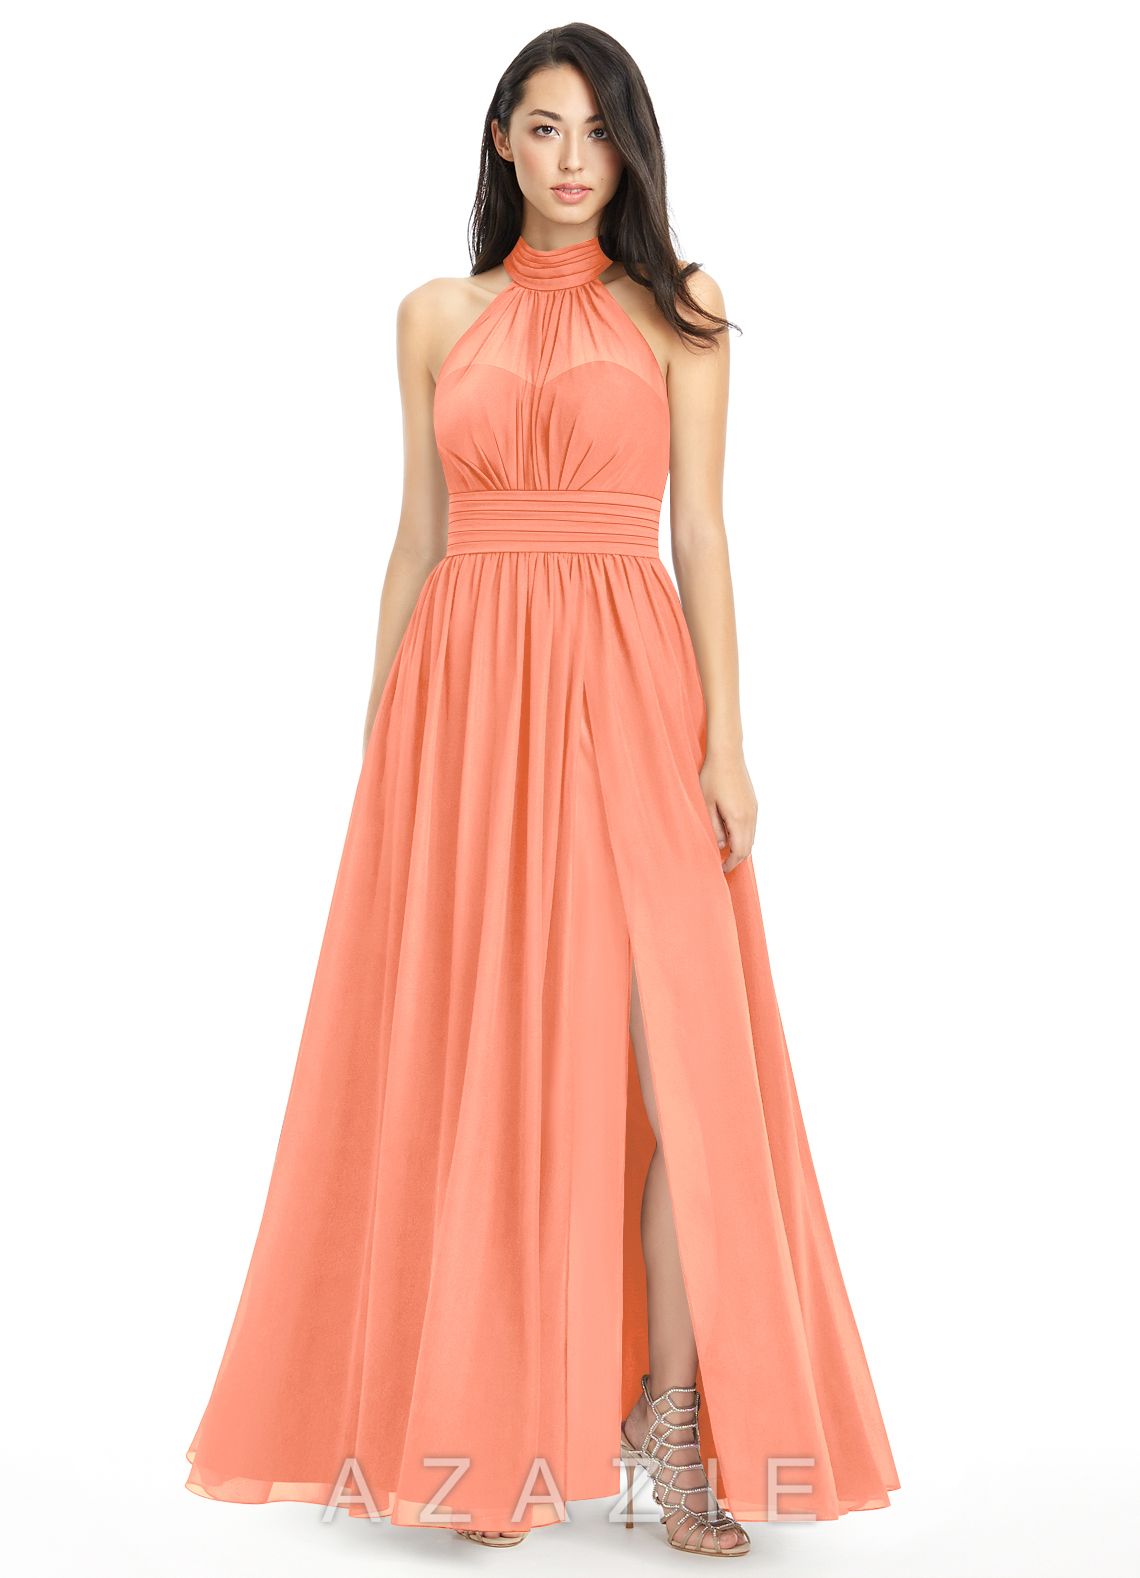 Sunset colored wedding dress